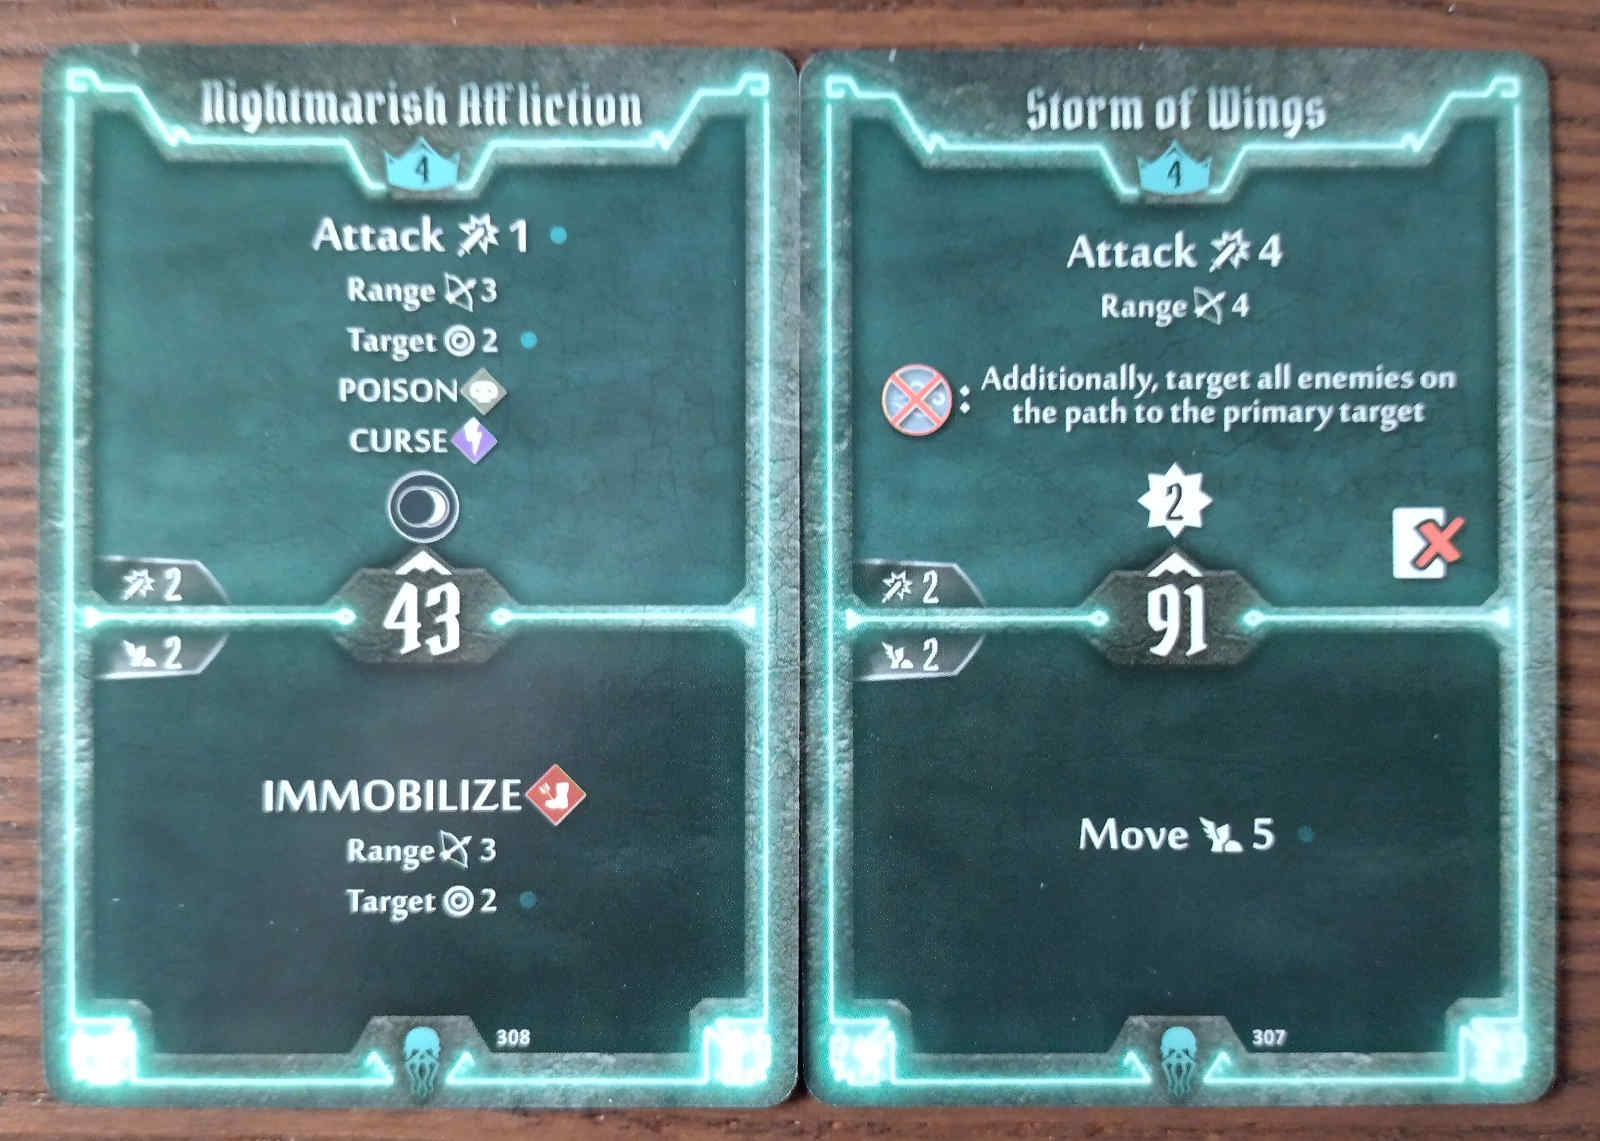 Level 4 Plagueherald cards - Nightmarish Affliction and Storm of Wings